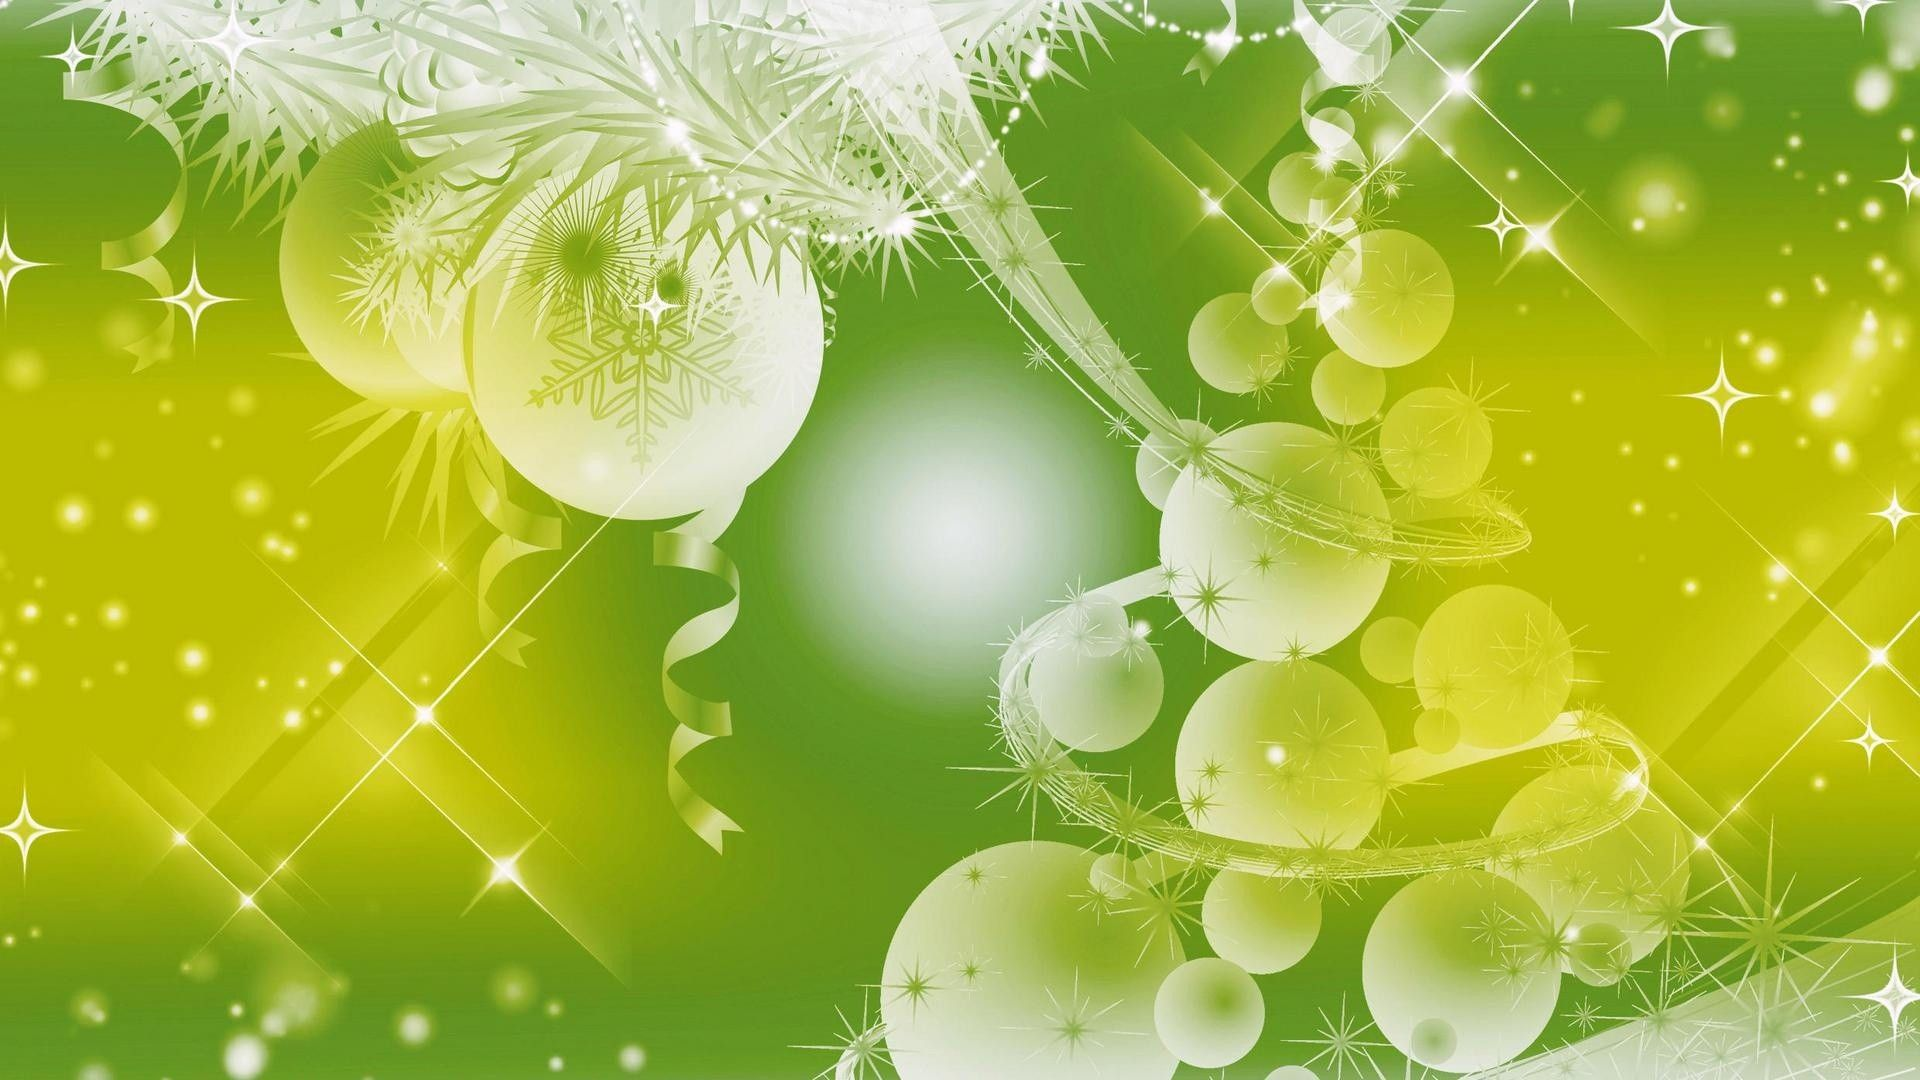 Green Christmas Wallpaper and Background